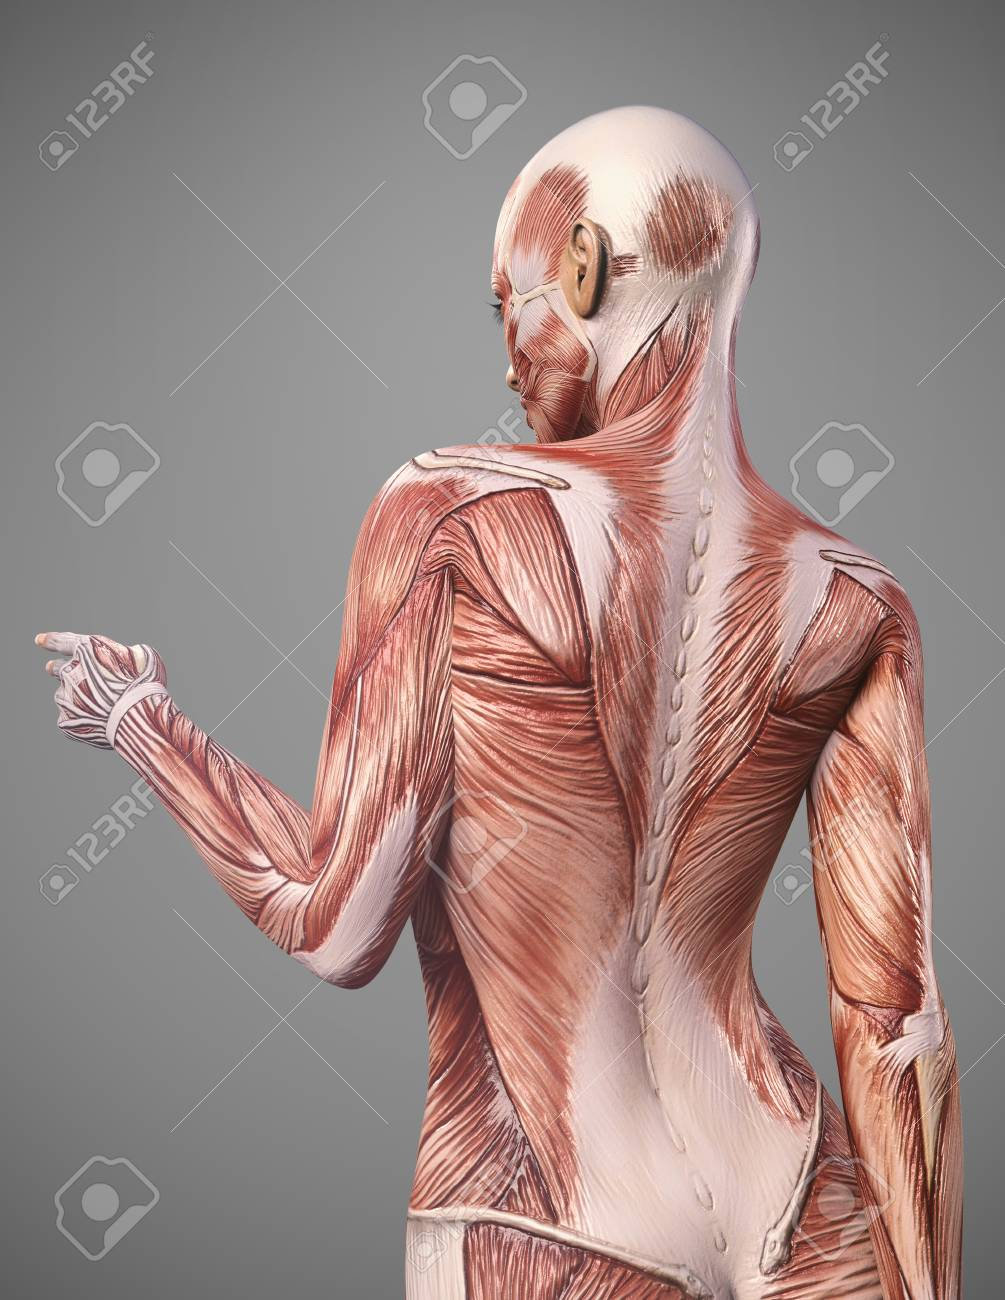 Back Muscle Anatomy Of Woman Render Stock Photo Picture And Royalty